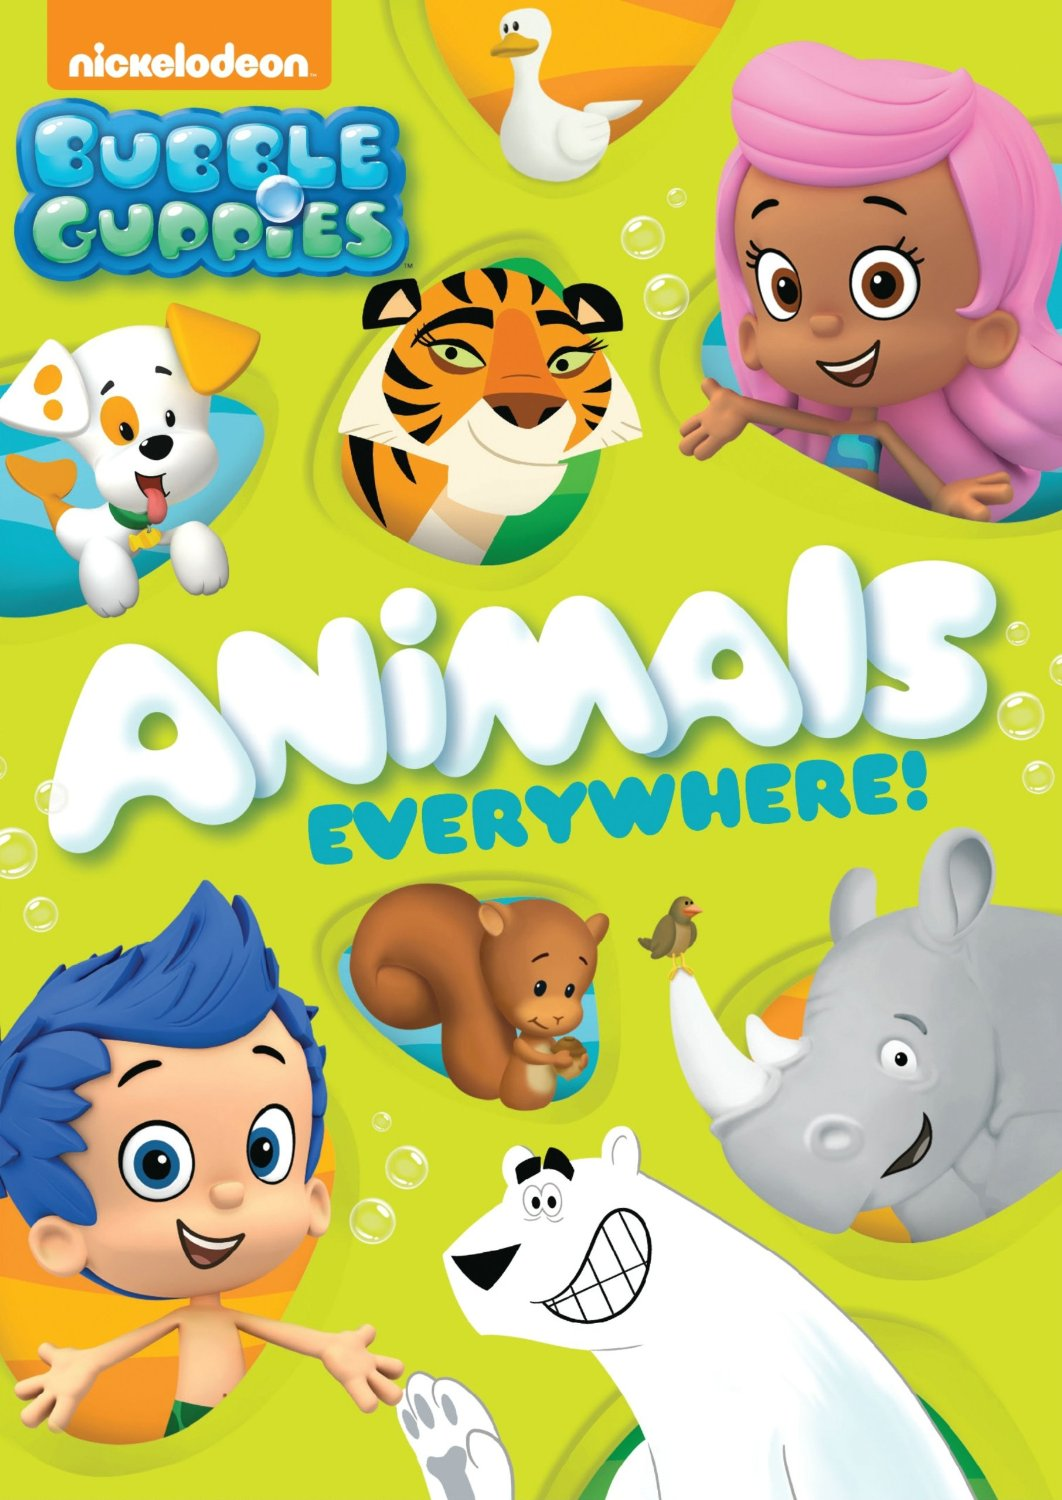 Bubble guppies videography nickipedia all about nickelodeon and its many productions - Bubulles guppies ...